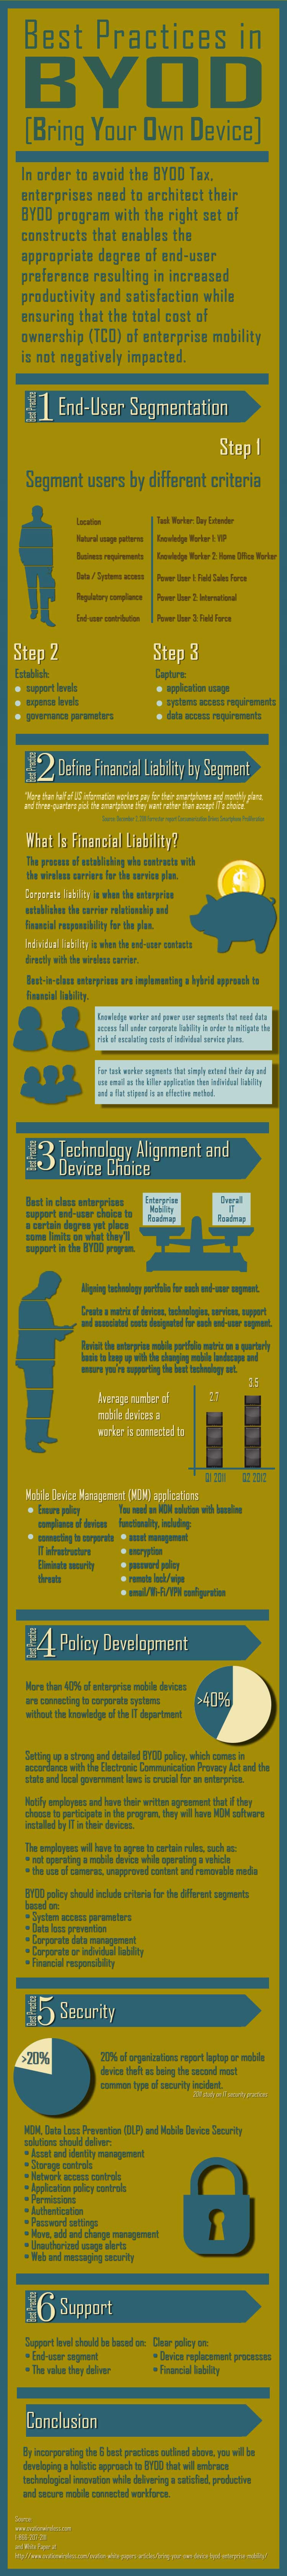 Best Practices in BYOD Infographic